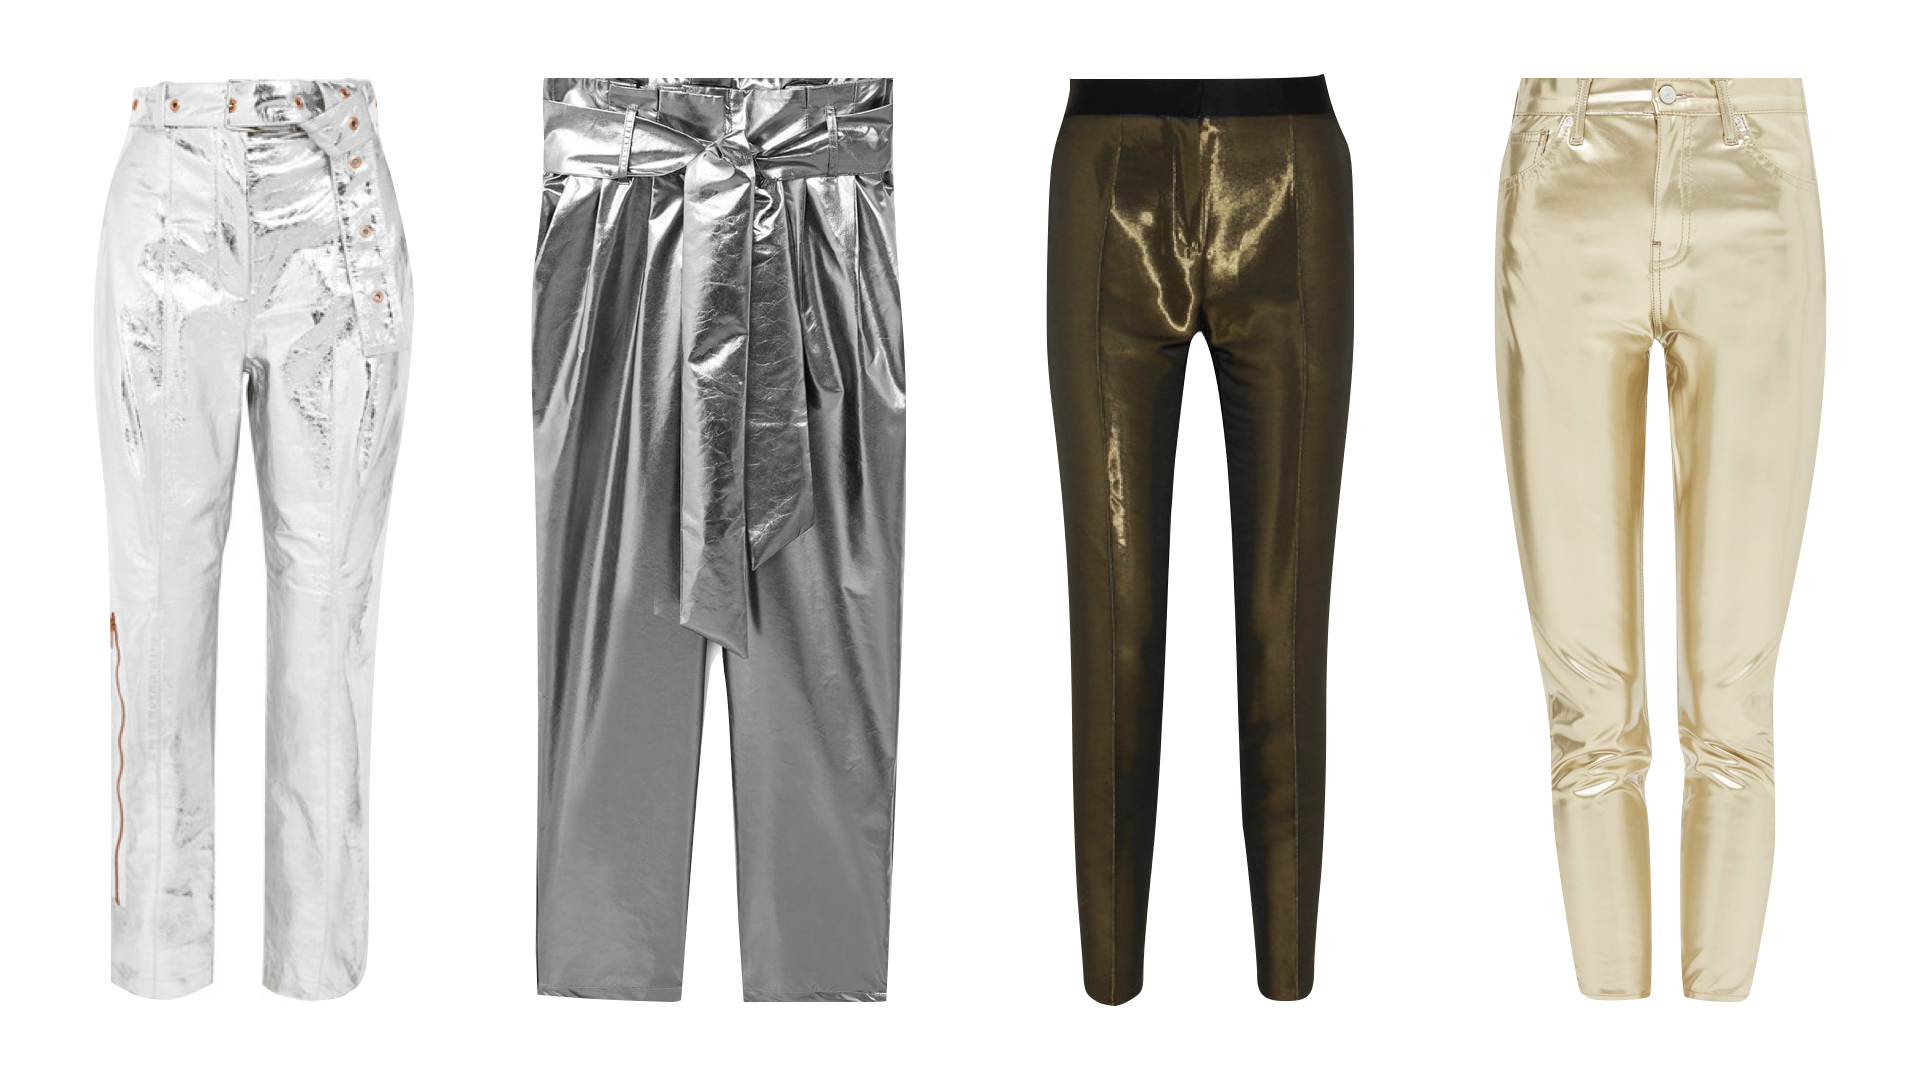 Streetstyle images via Pinterest & product from left to right:  Proenza Schouler metallic leather straight leg trousers  /    Mango high waisted metallic trousers  /  Pallas metallic crepe tuxedo trousers  /  Topshop gold vinyl jamie jeans